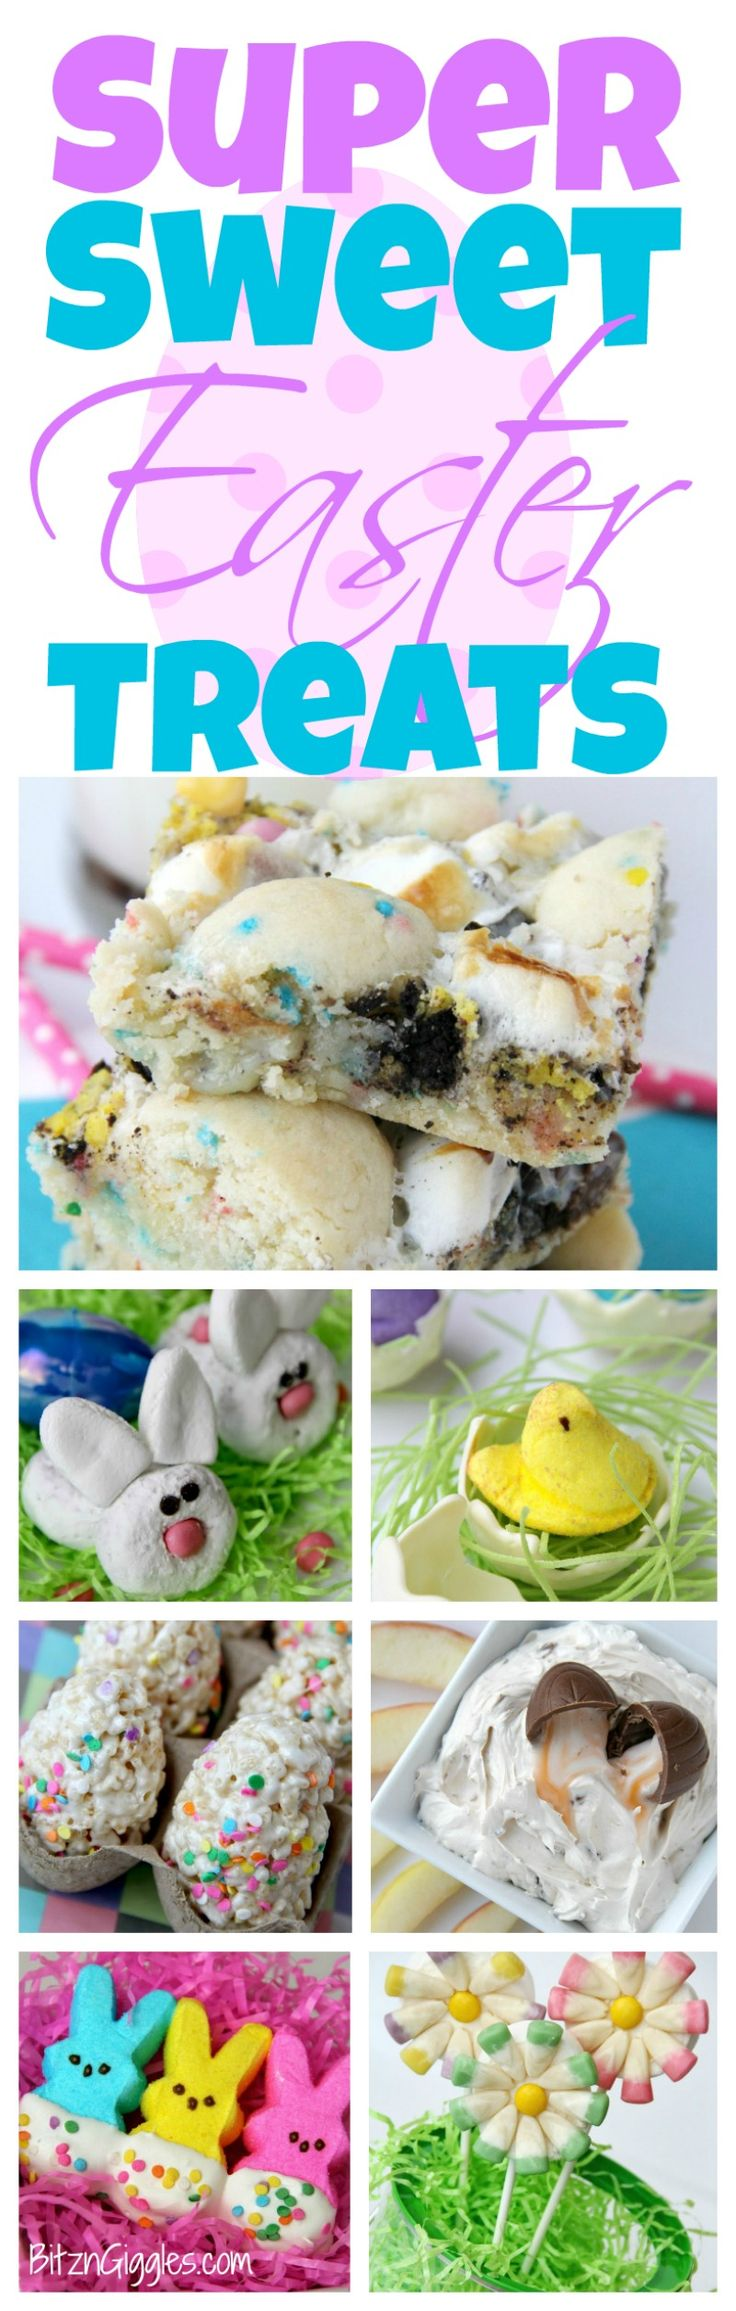 Super Sweet Easter Treats - Lots of colorful and delicious sweet treats for Spring and Easter!